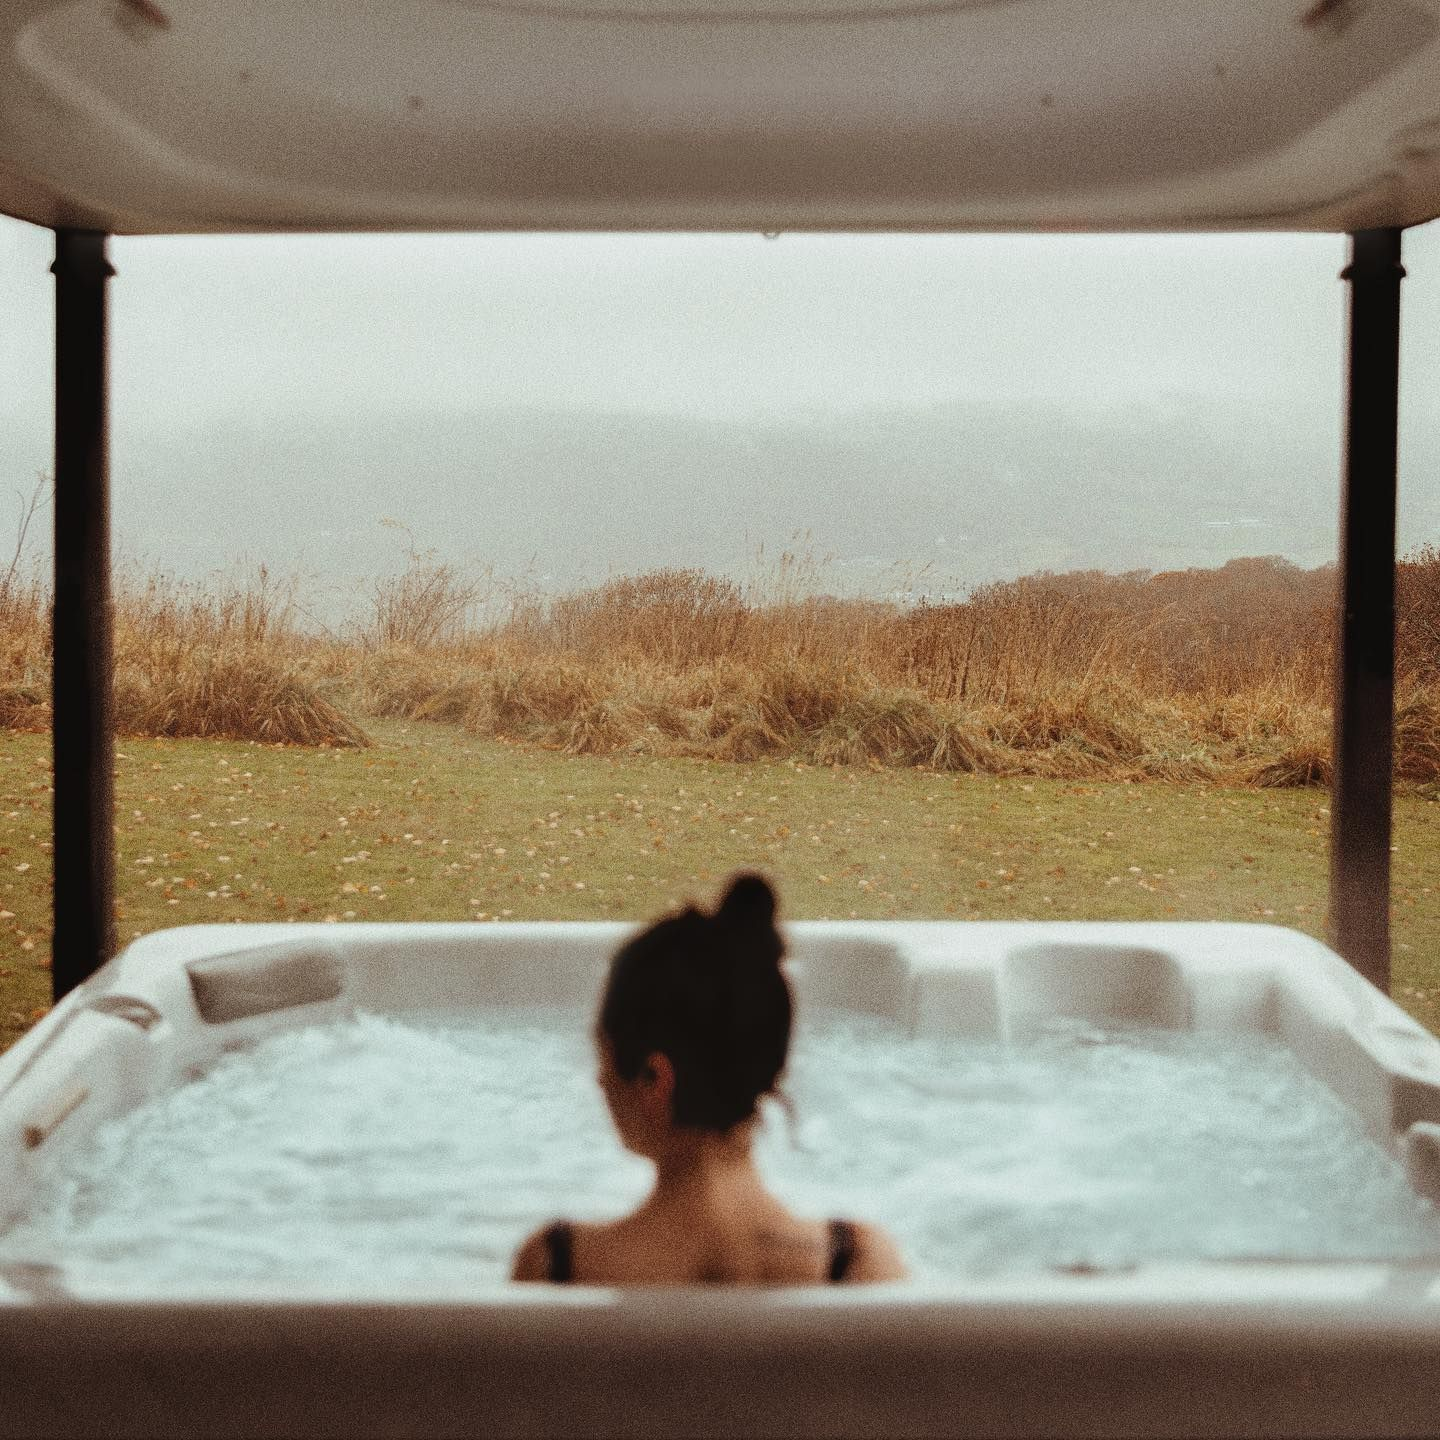 Ad Gifted Stay Allow Me To Introduce The Best Hot Tub In The Whole Wide Wo Allow Gifted Introduce Who Hot Tub Snowdonia National Park Wide World